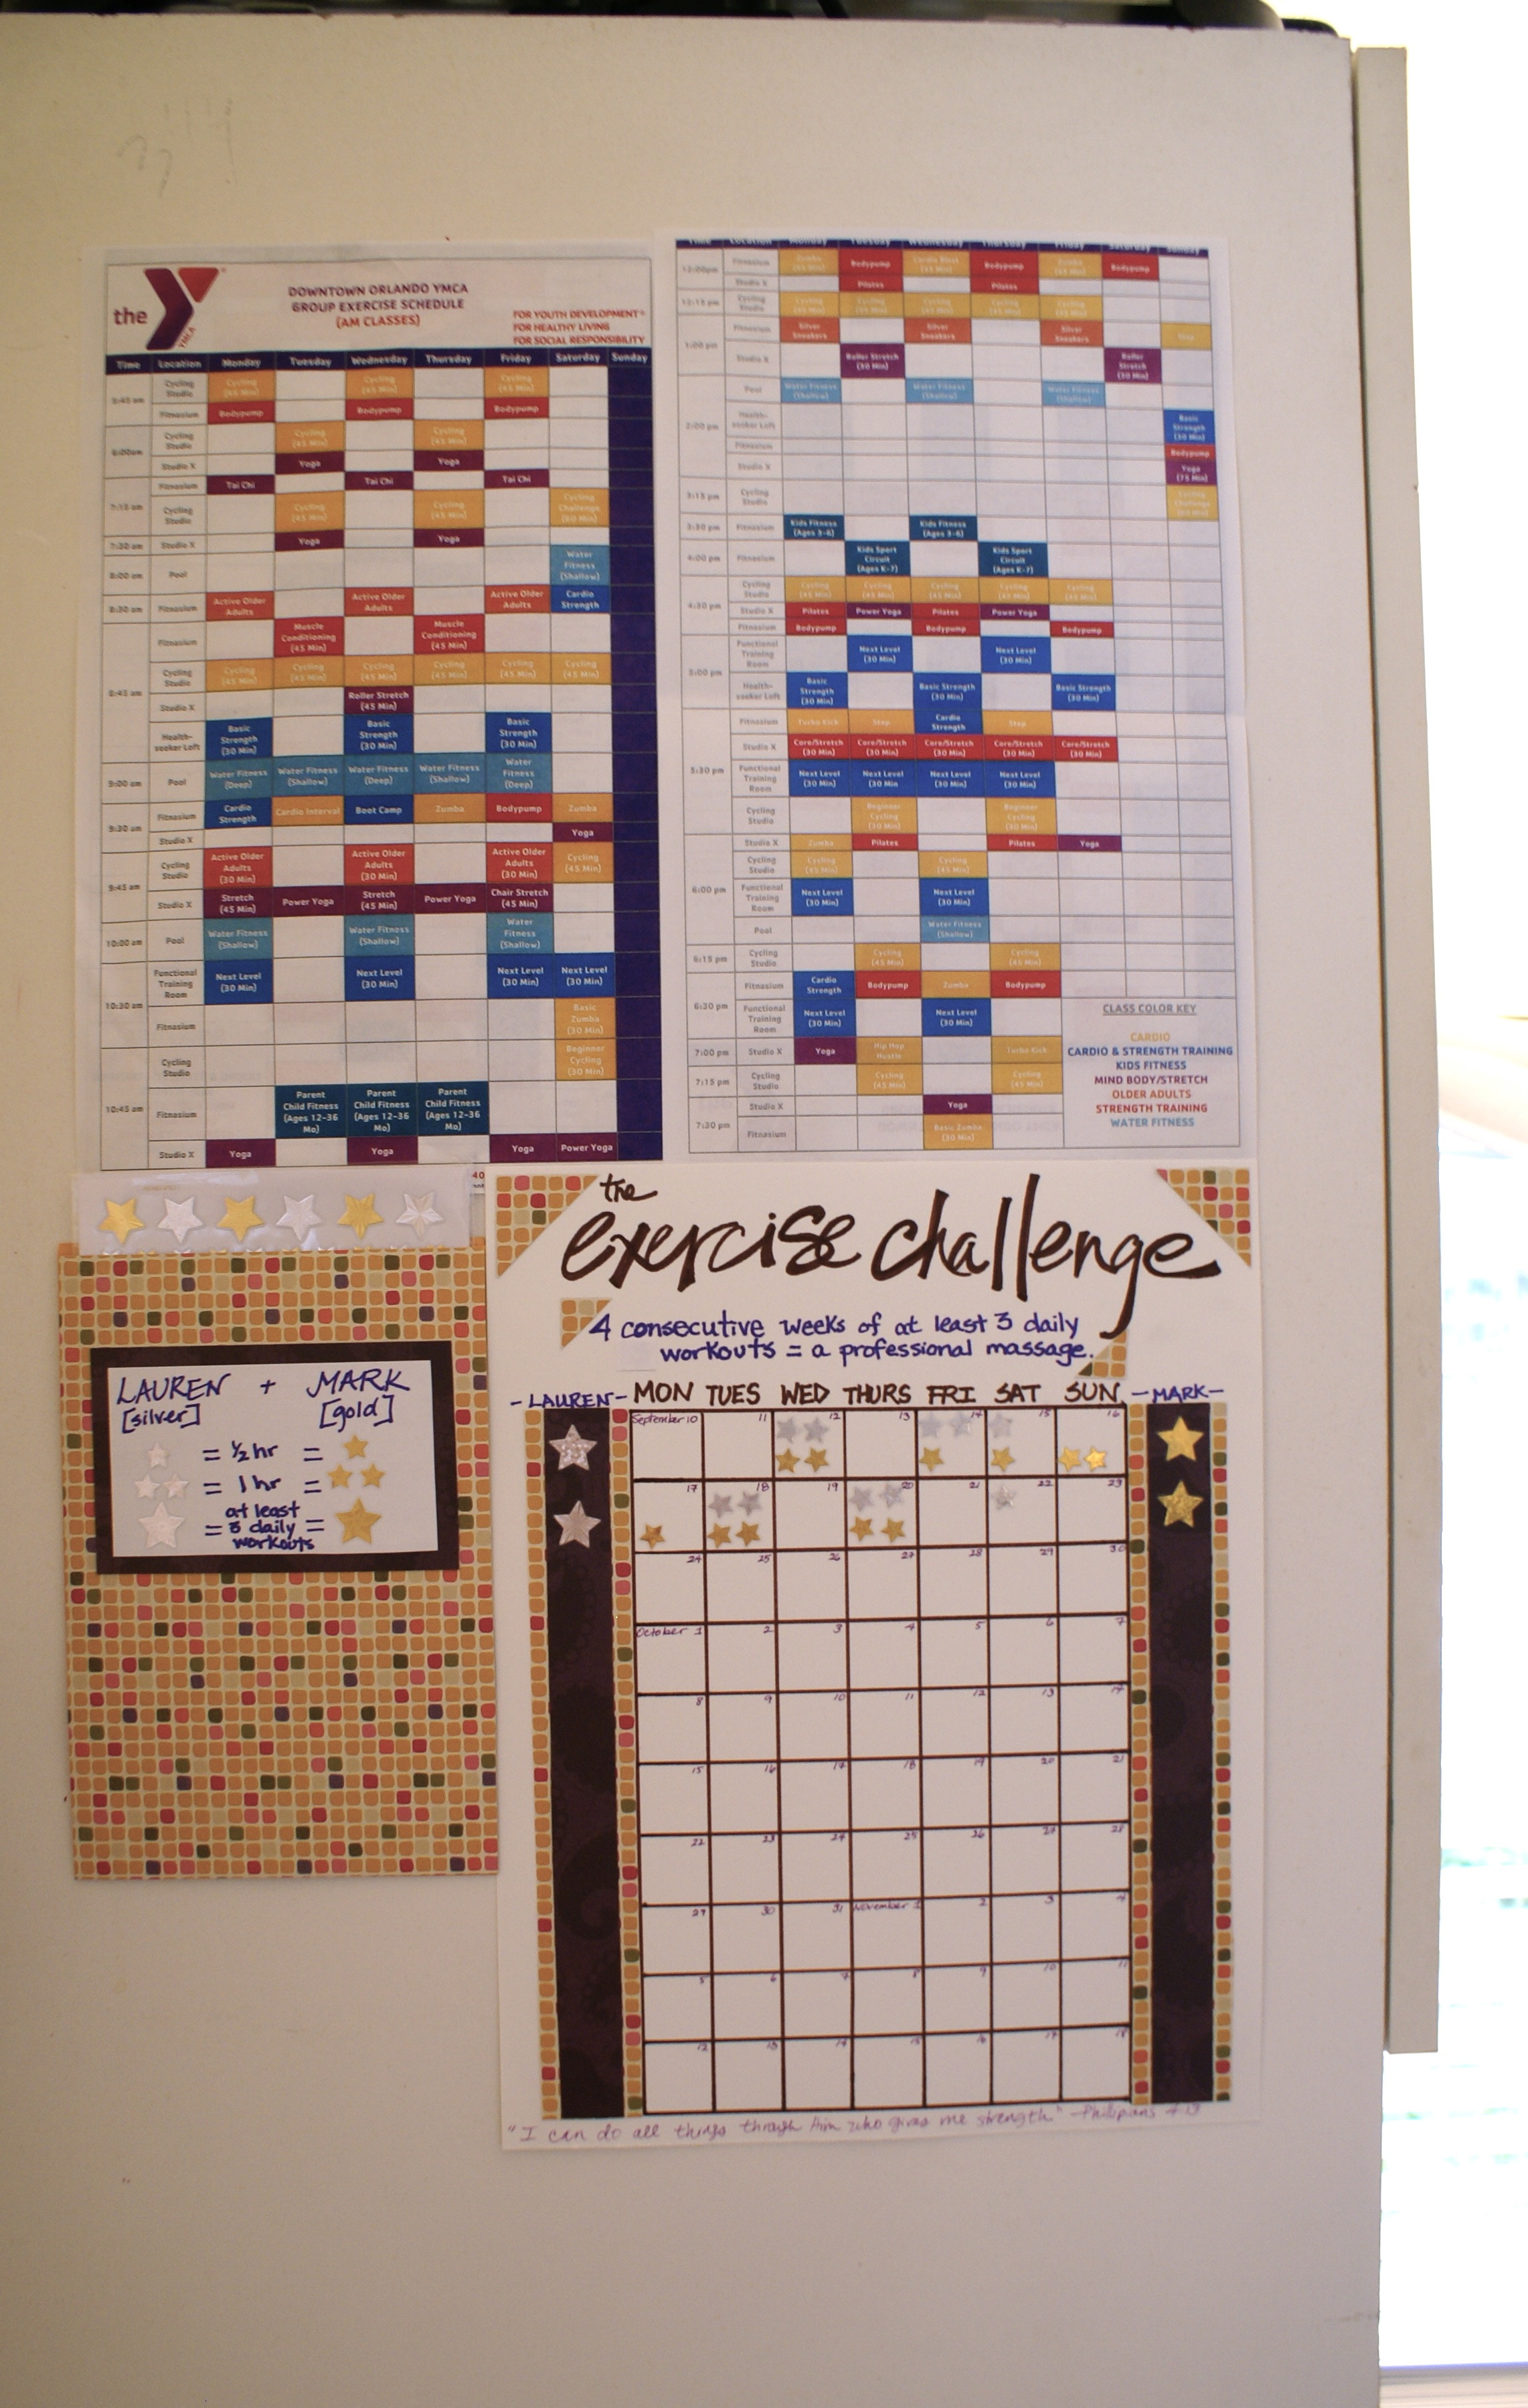 Exercise Challenge Chart with Fitness Class Schedule